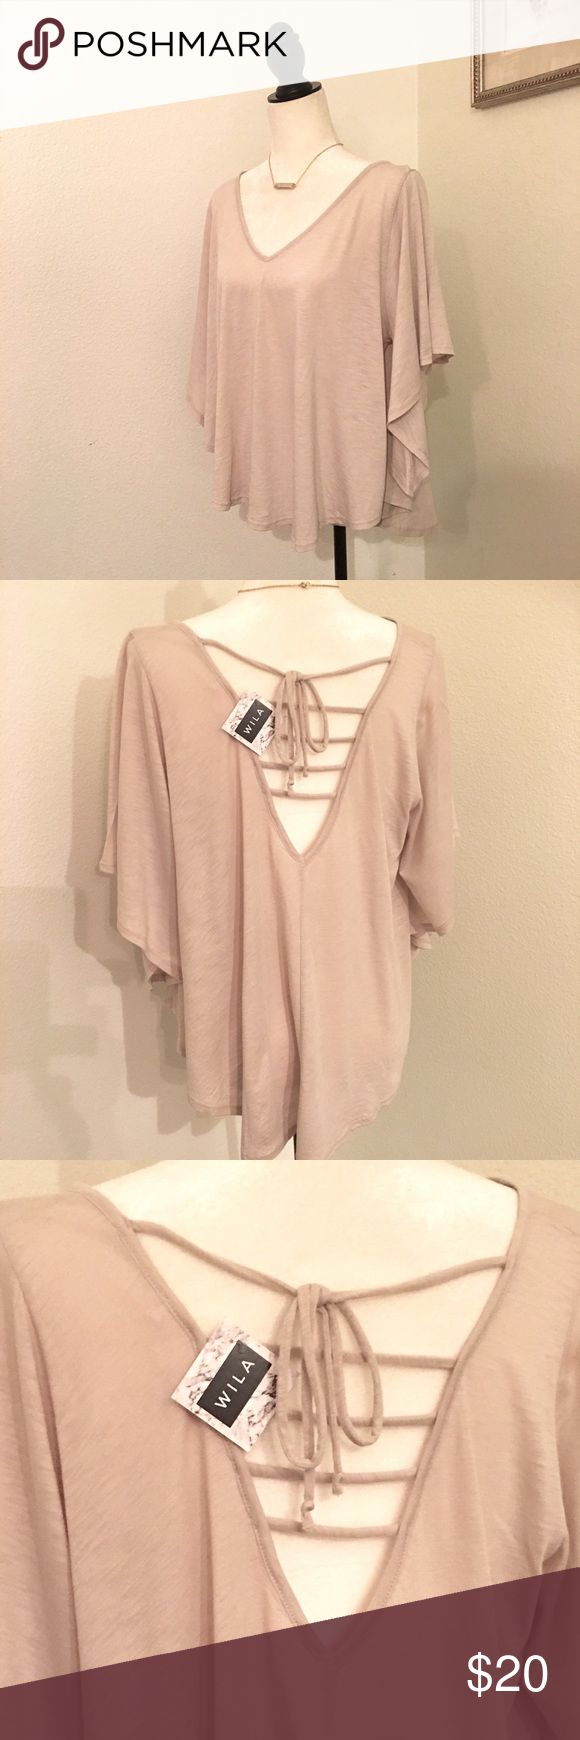 Plunging Tie Back V Neck Batwing Top by WILA NWT Gorgeous V Neck Top by WILA. Batwing sleeves, plunging Tie Back, cream color. Size Small. 55% cotton, 45% Modal. New with tags from my non smoking home 💕 WILA Tops